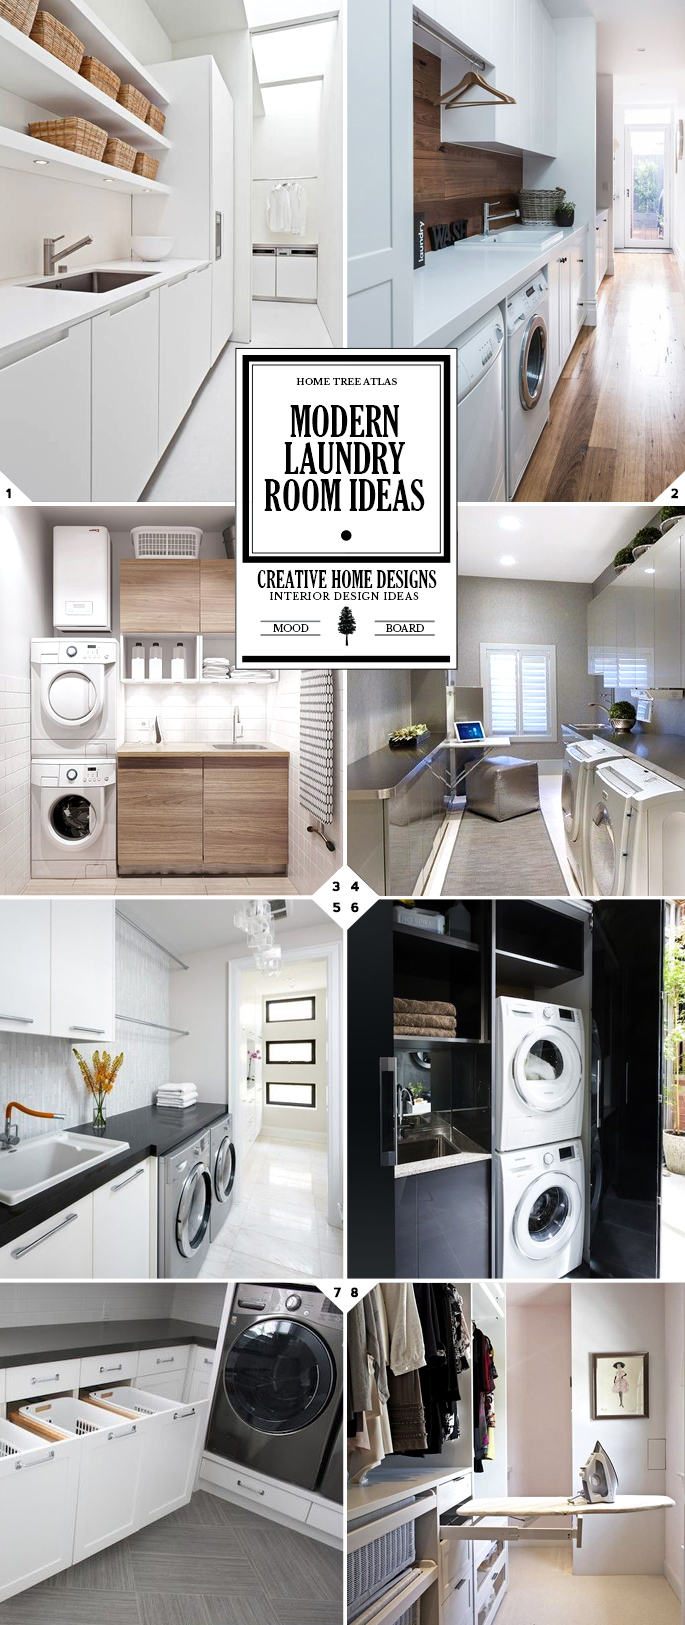 Modern laundry room decor, design, and layout ideas